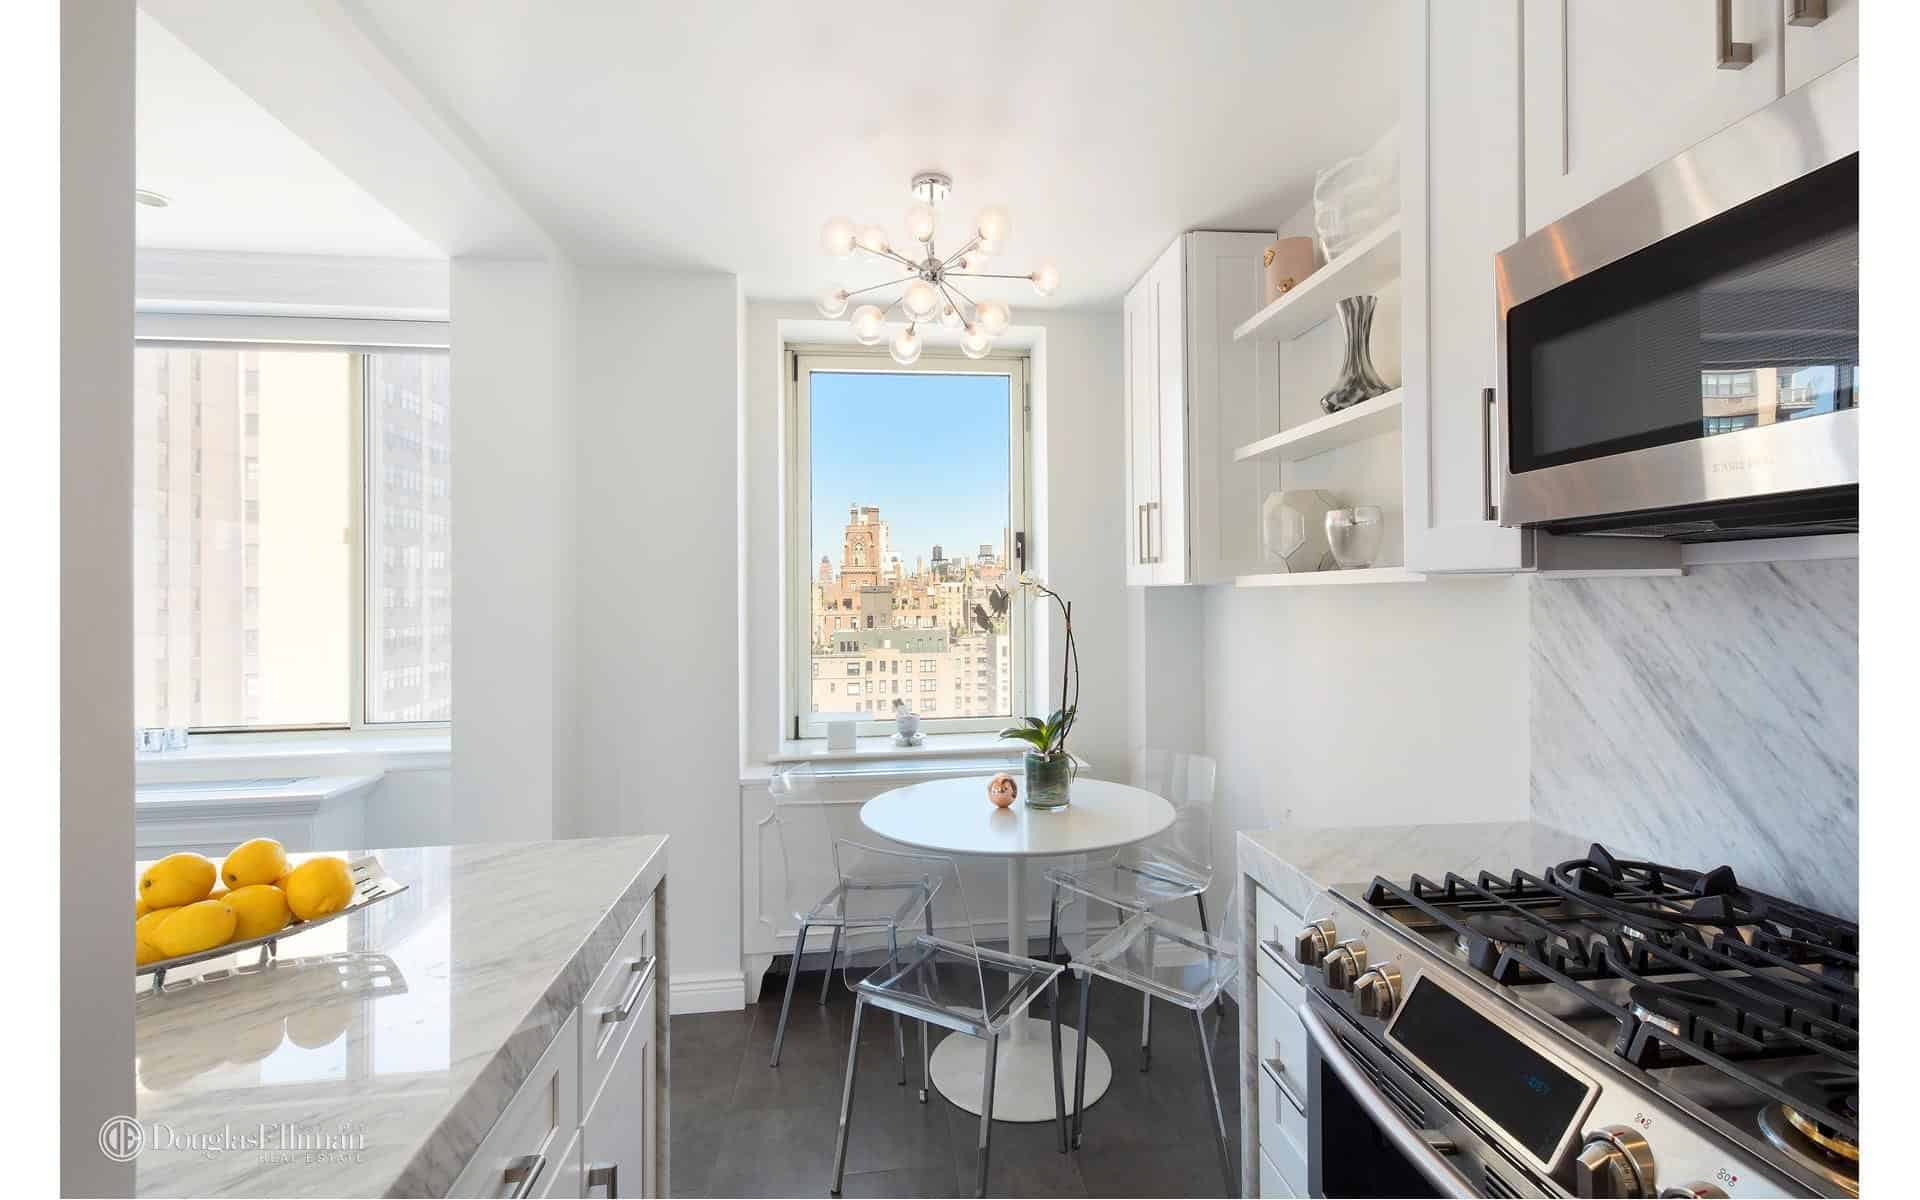 An eat-in kitchen features white cabinets and a marble backsplash that matches the countertops. It is completed with a round dining table and glass chairs by the picture window framing an incredible city view.